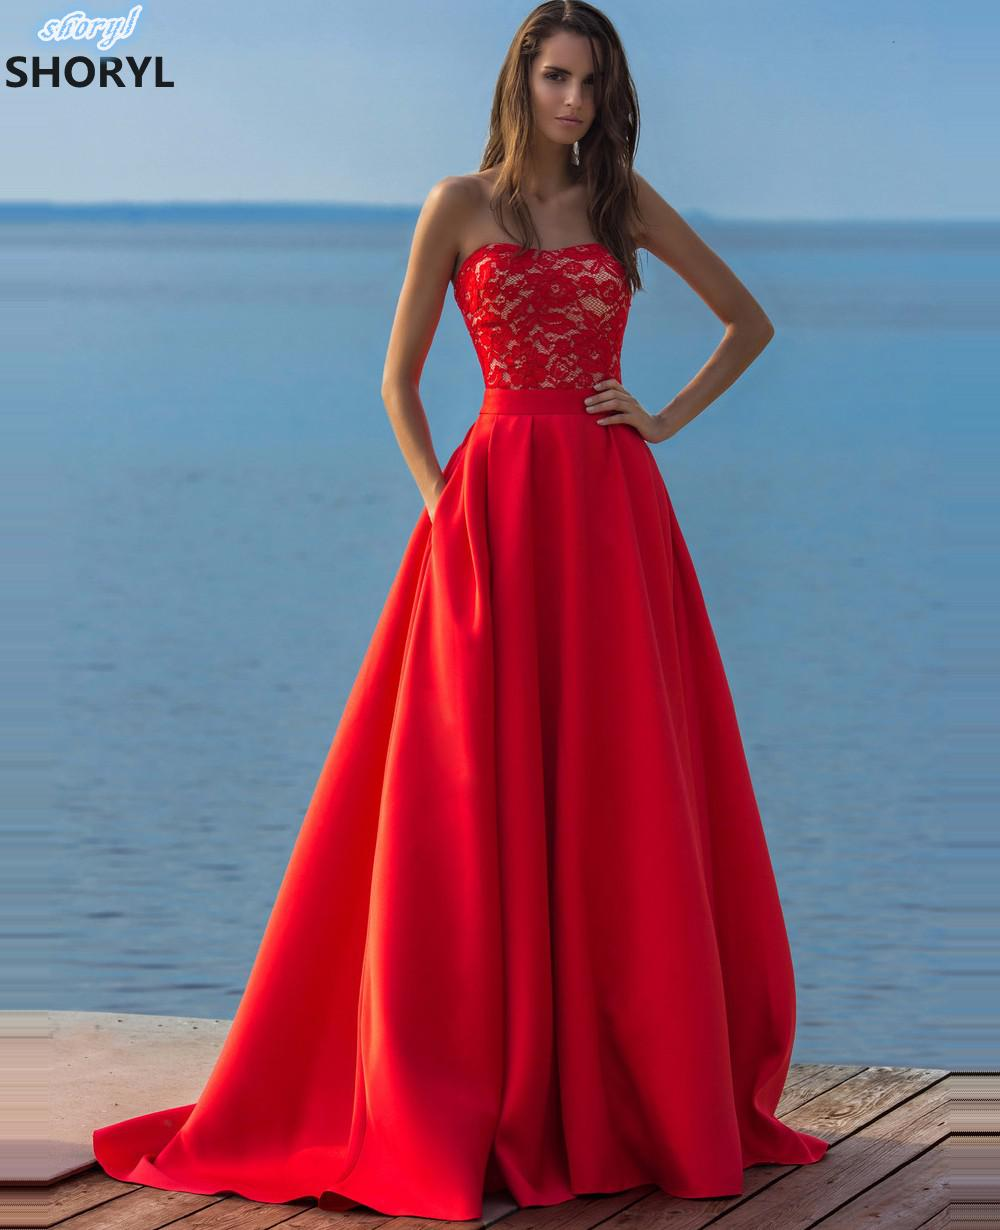 Cute Plus Size Red Prom Dress Ideas - Wedding Ideas - memiocall.com